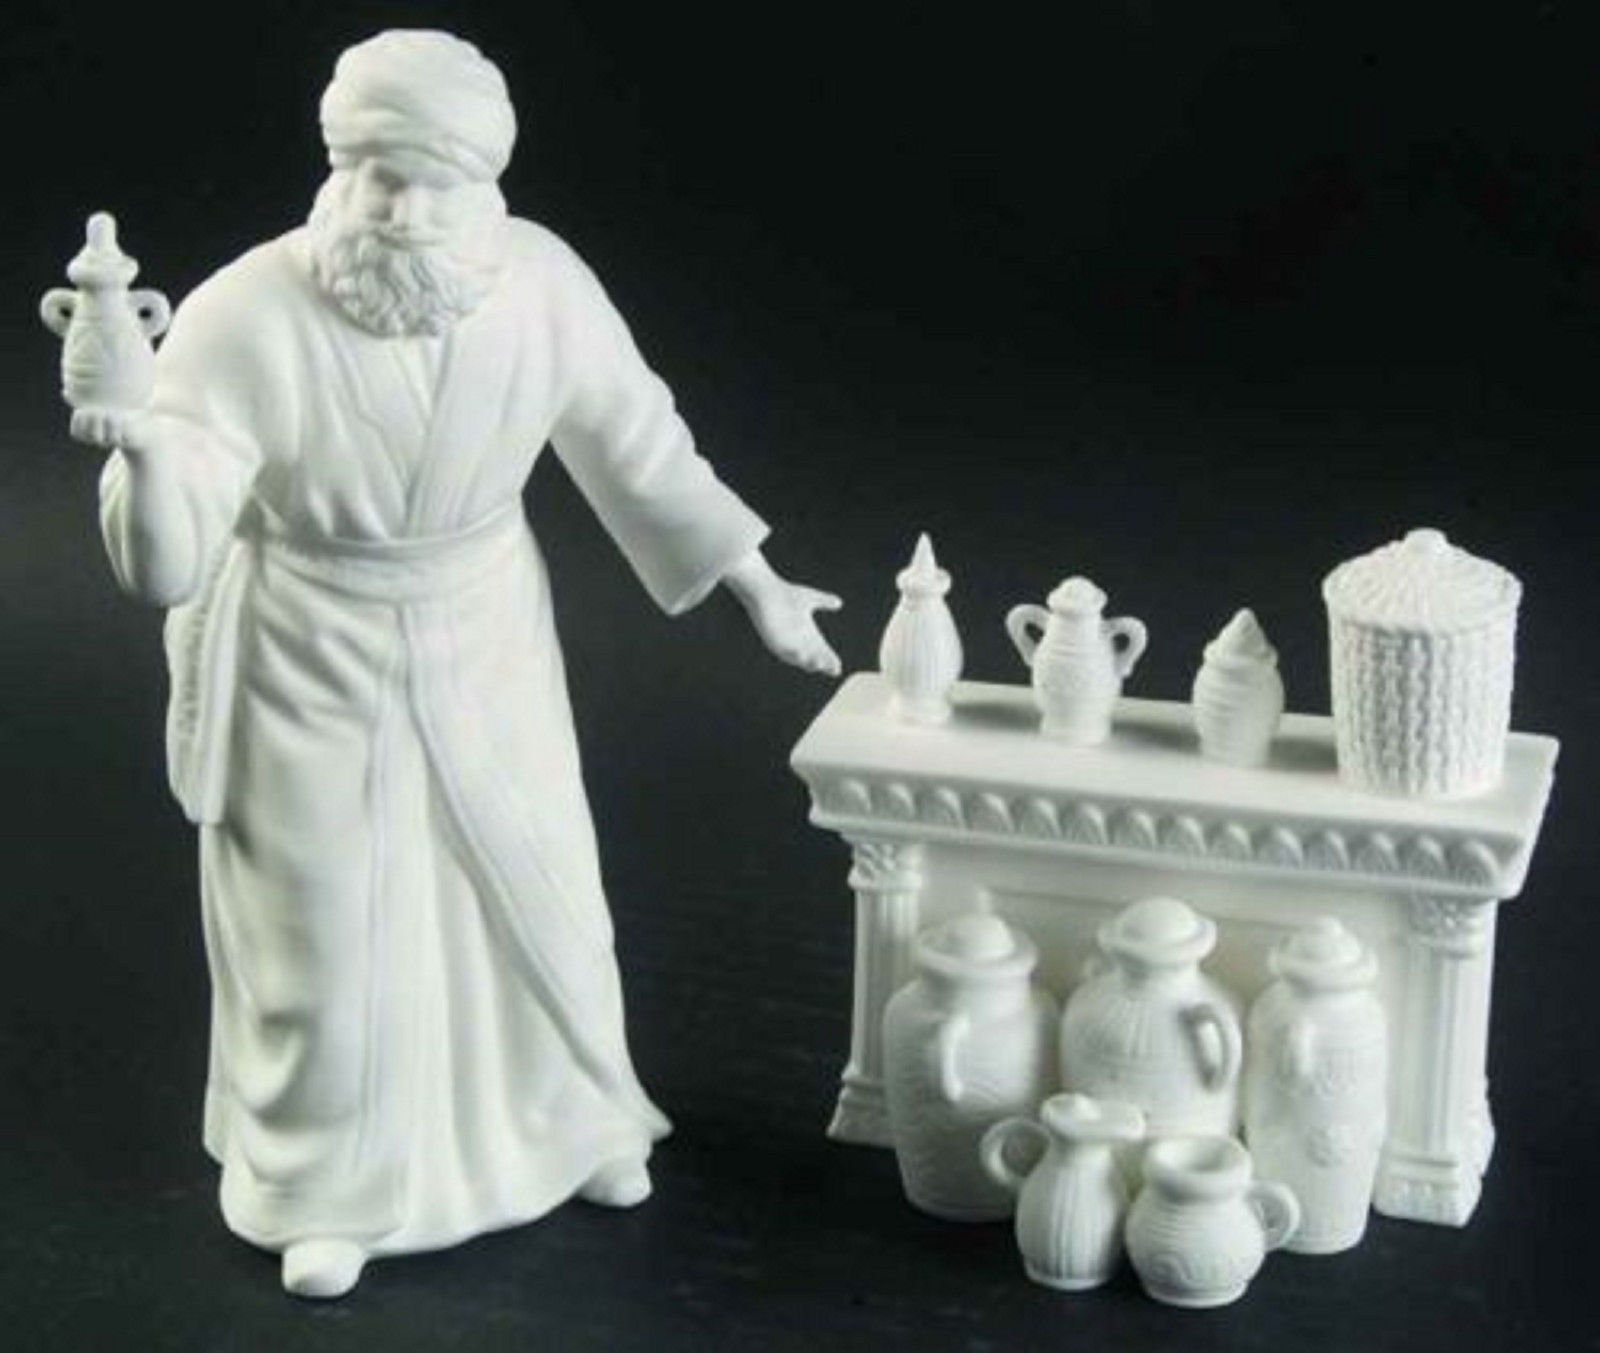 Lenox White Perfume Seller Figurine Bone Nativity At The